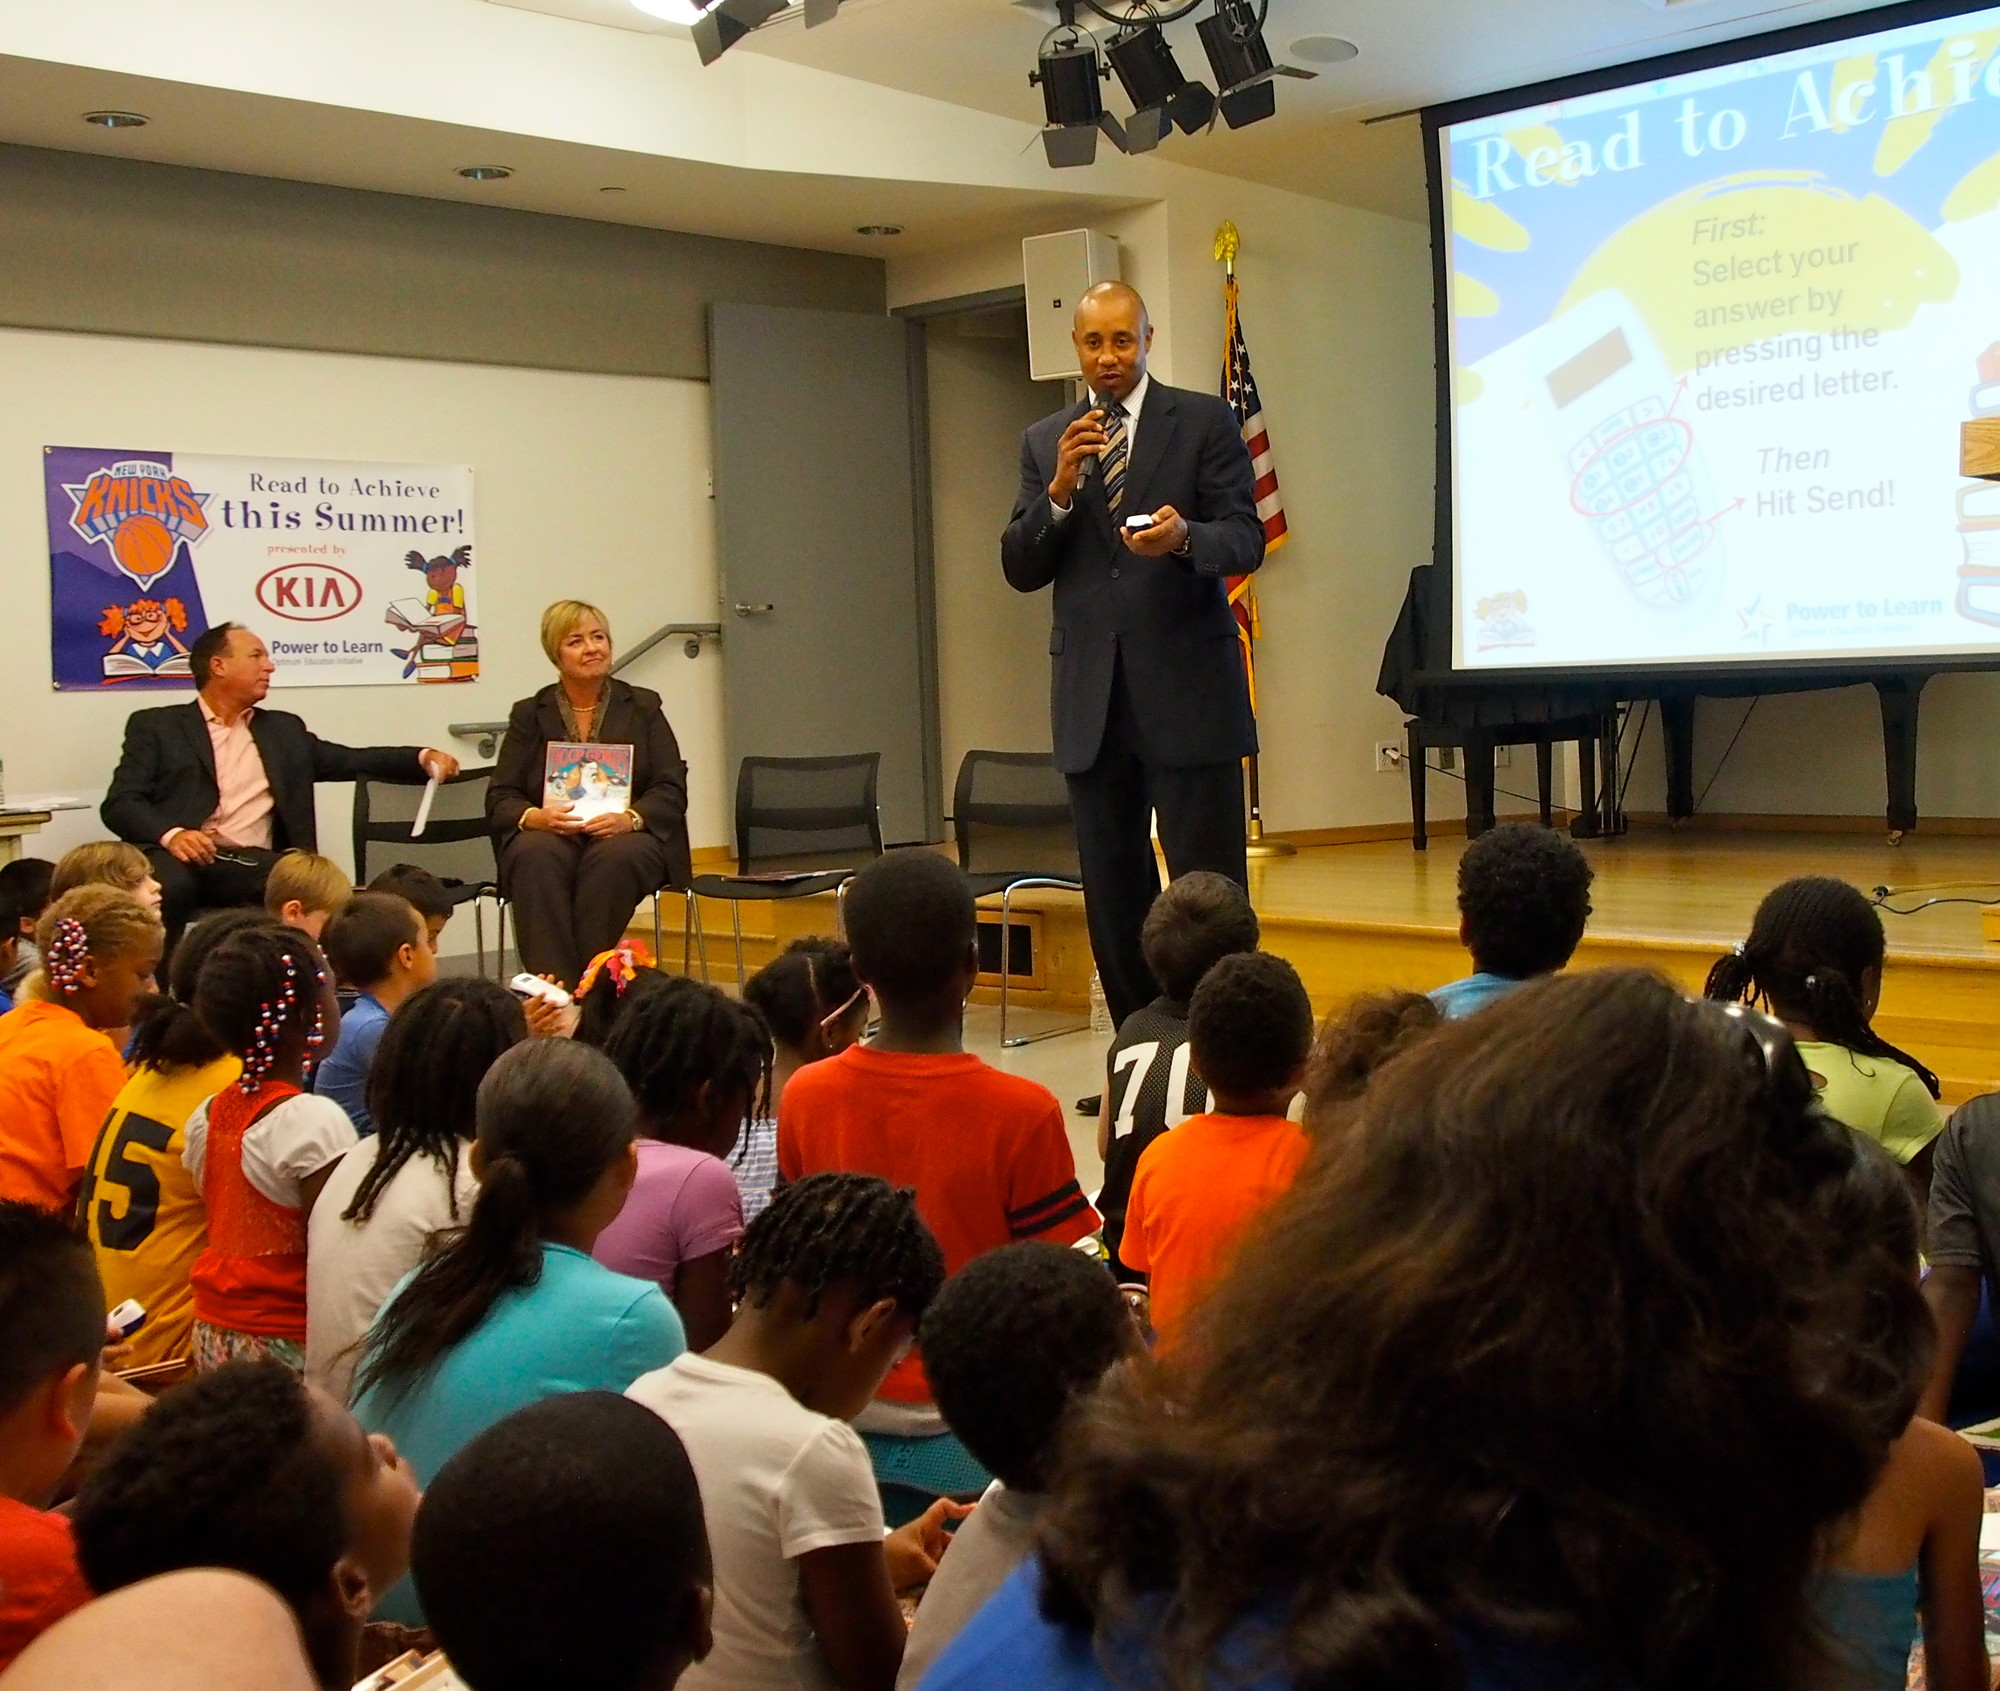 Former Knicks guard John Starks spoke about the importance of literacy during a visit to the Baldwin Public Library last week. Starks encouraged kids to read, especially in the summer, when school skills are prone to erode.